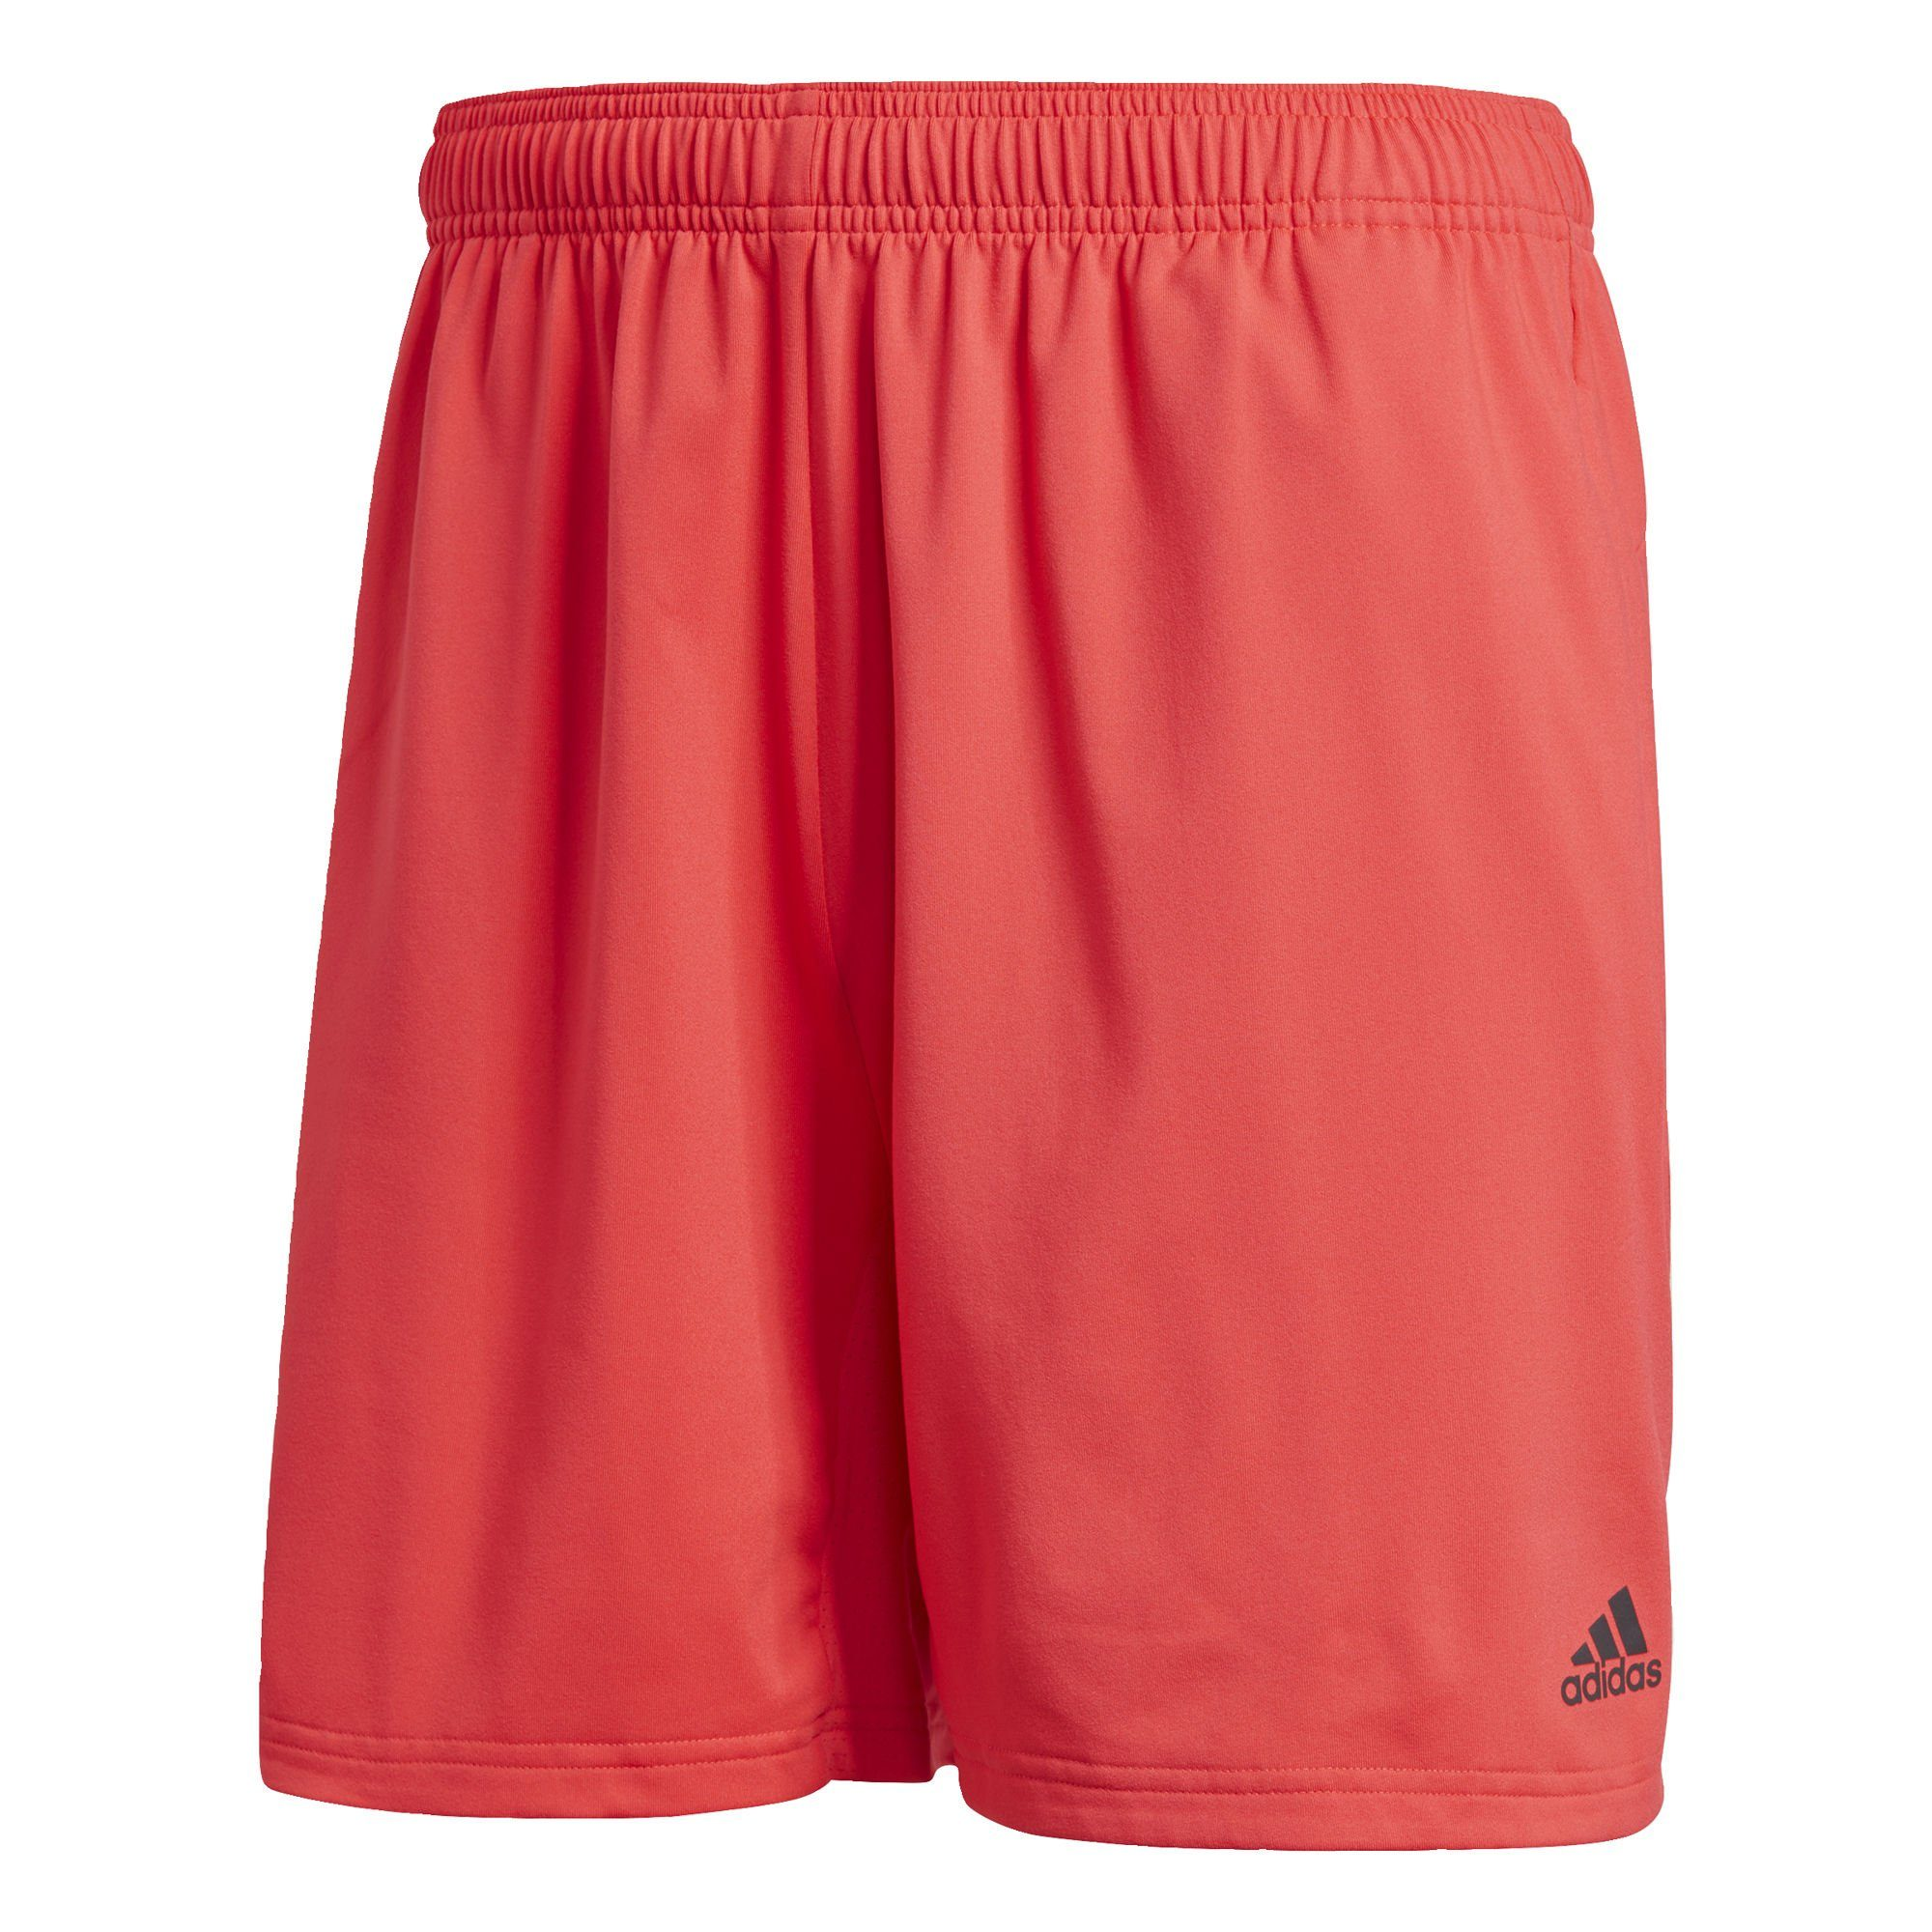 adidas Performance Shorts »4KRFT 6 Inch Tech Climacool Shorts« Clima online kaufen | OTTO